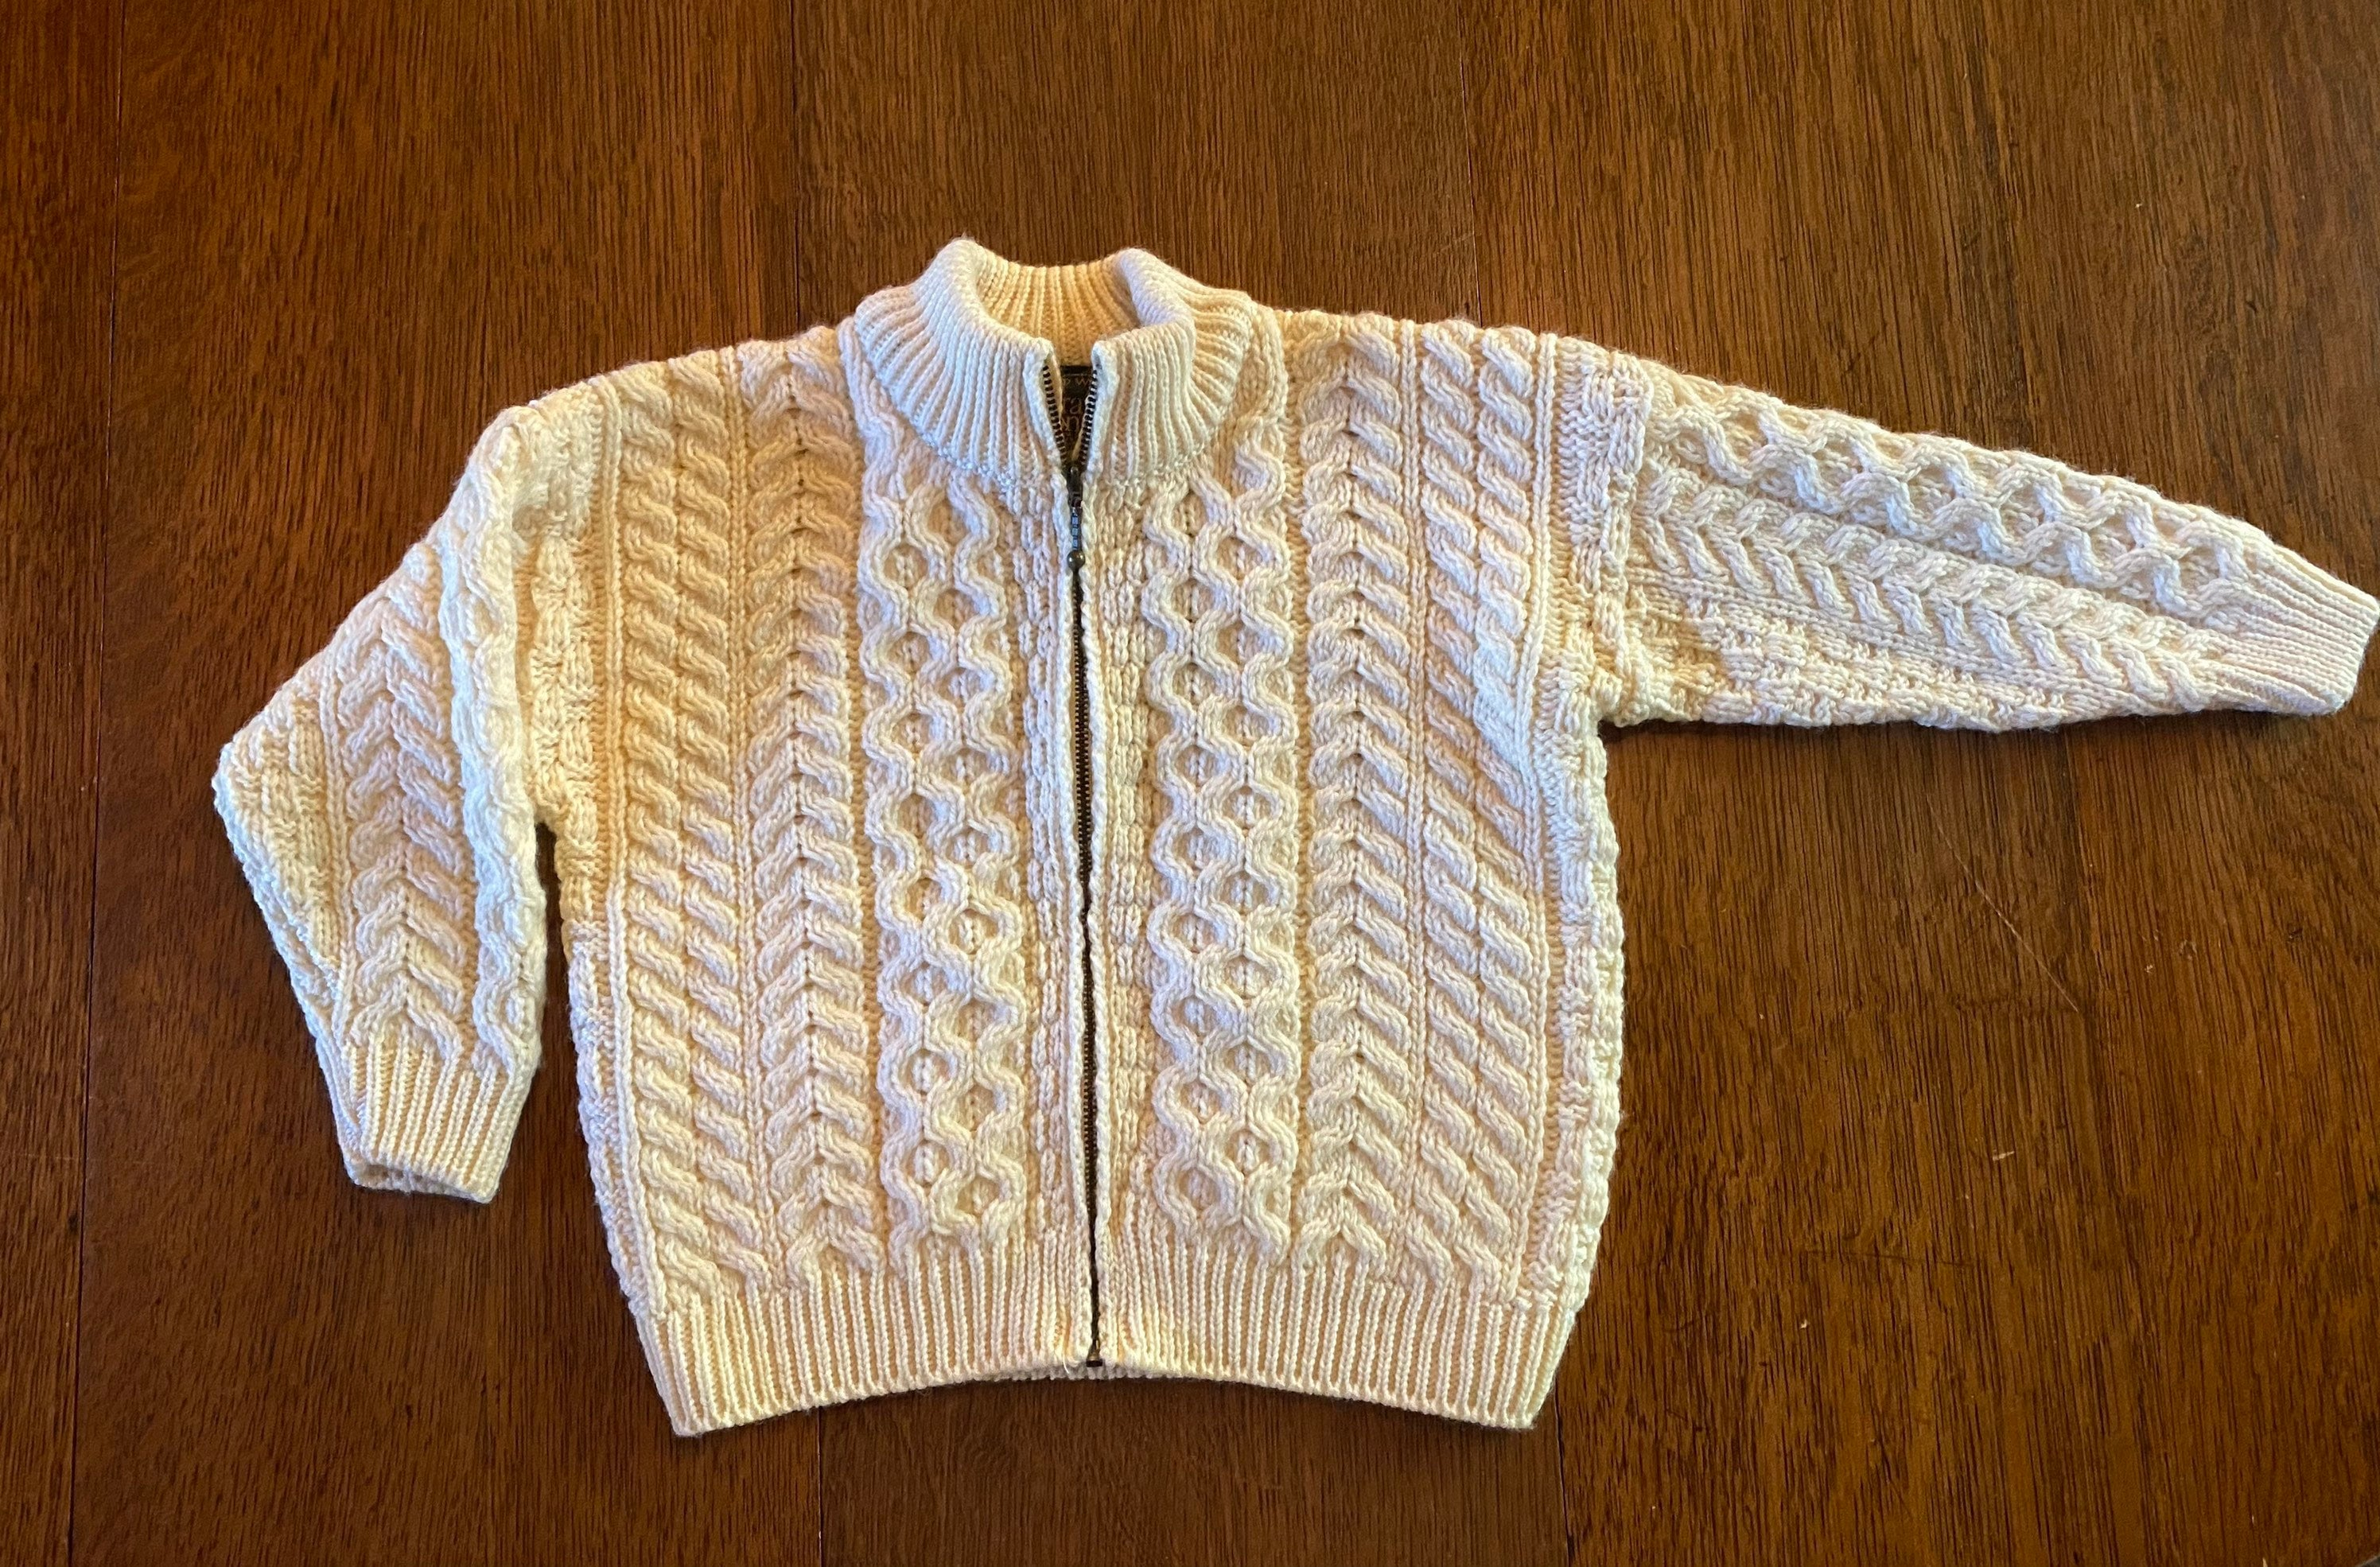 80s Sweatshirts, Sweaters, Vests | Women Merino Wool Childs Cardigan Sweater Age 6 To 8 Years Old Carraig Donn Made in Ireland New With Tags Never Used $59.00 AT vintagedancer.com